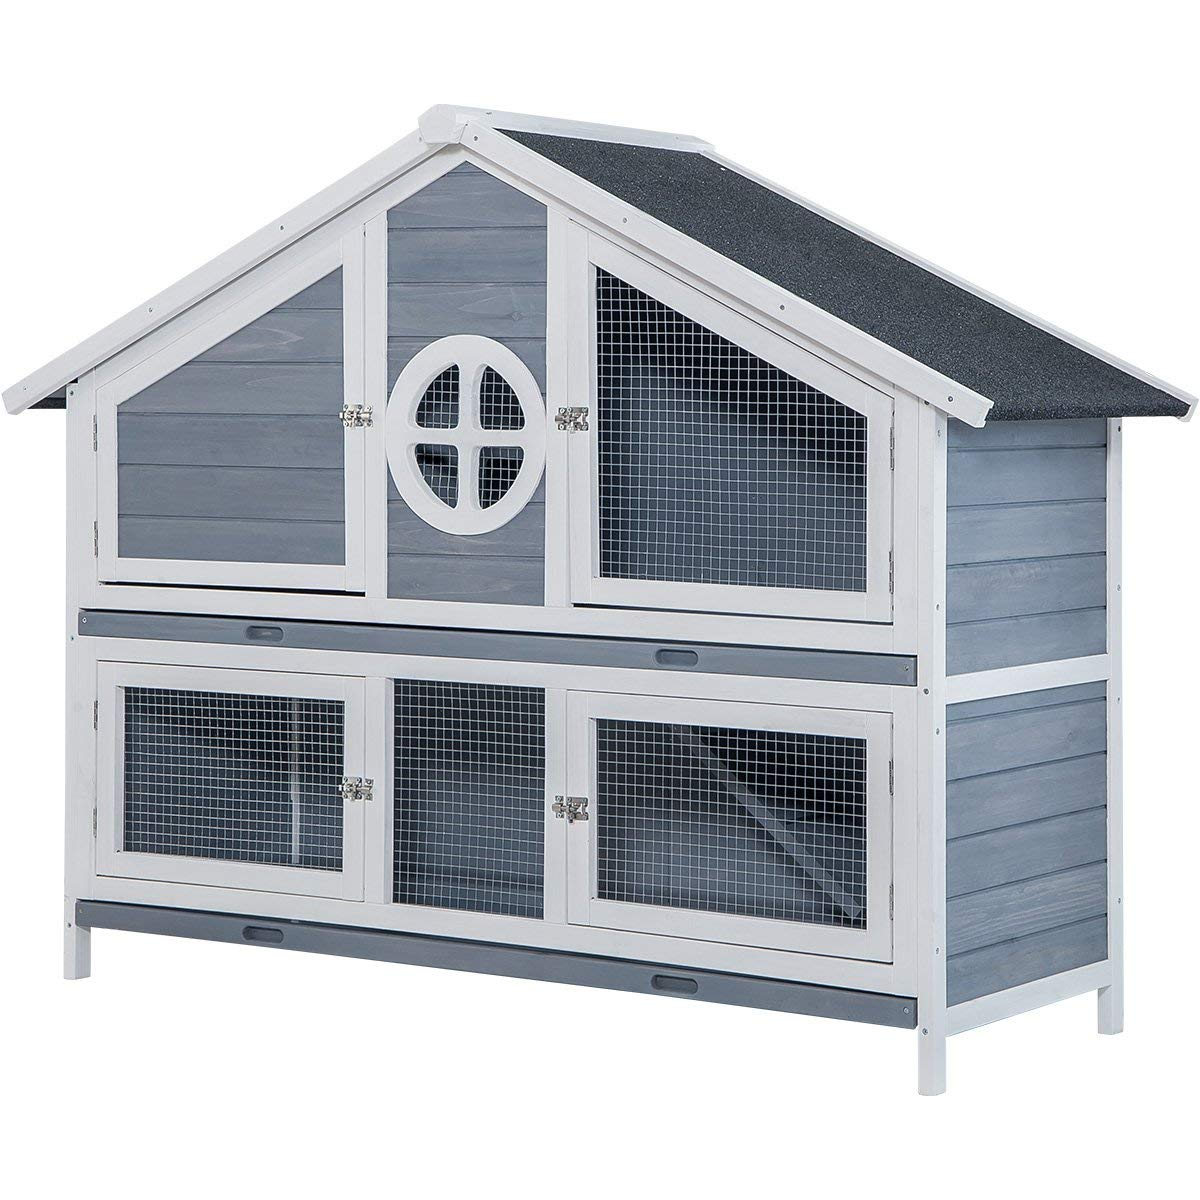 Rhomtree Large Wooden Rabbit Hutch Chicken Coop Bunny Animal Hen Cage House Great for Rabbits, Chickens, Ducks, and Other Poultry (Grey) by Rhomtree (Image #1)